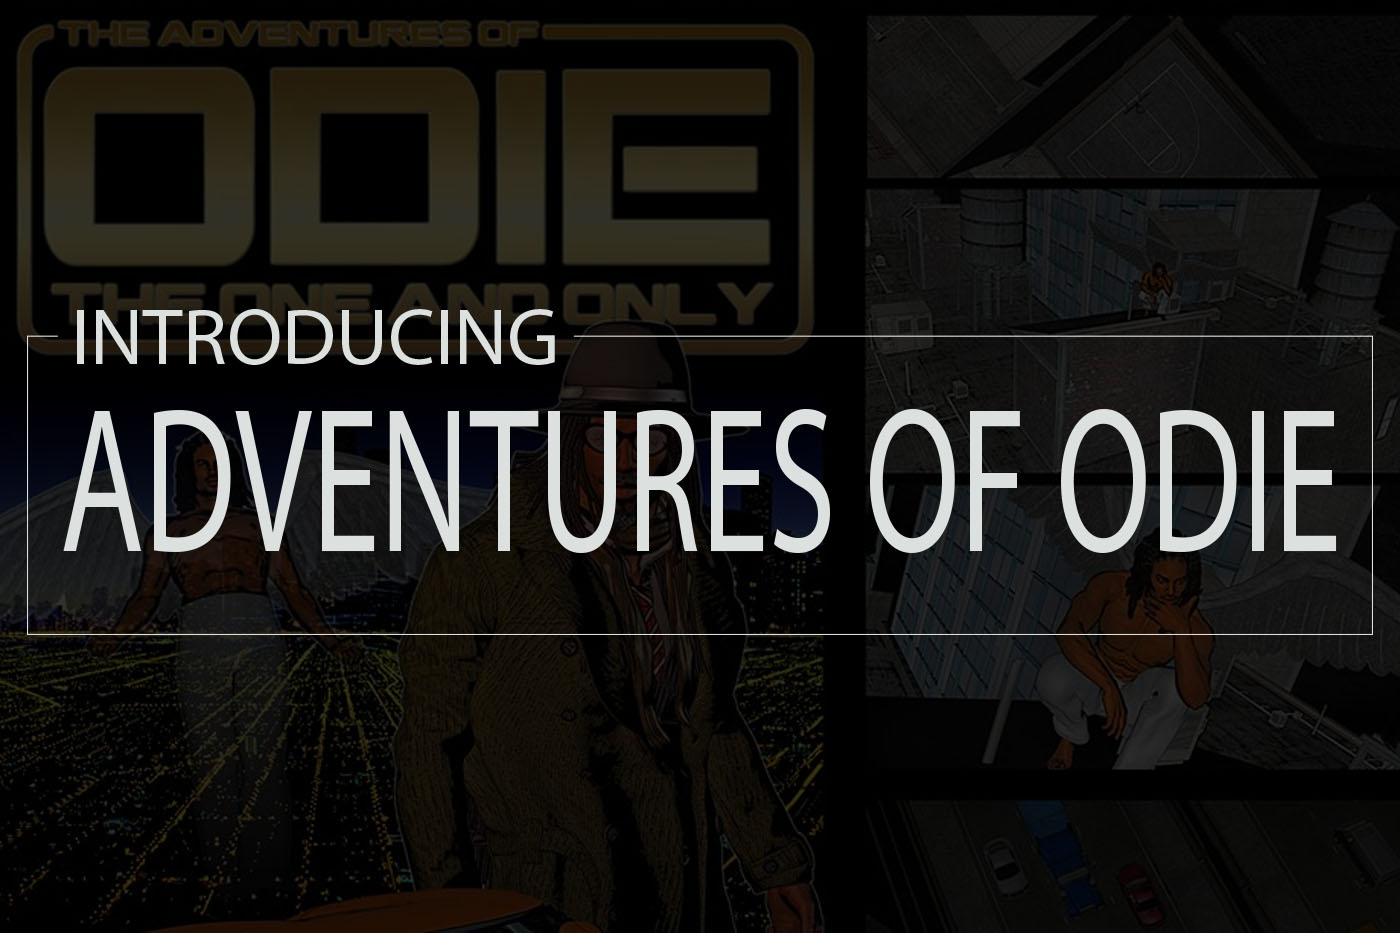 Introducing The Adventure's of Odie